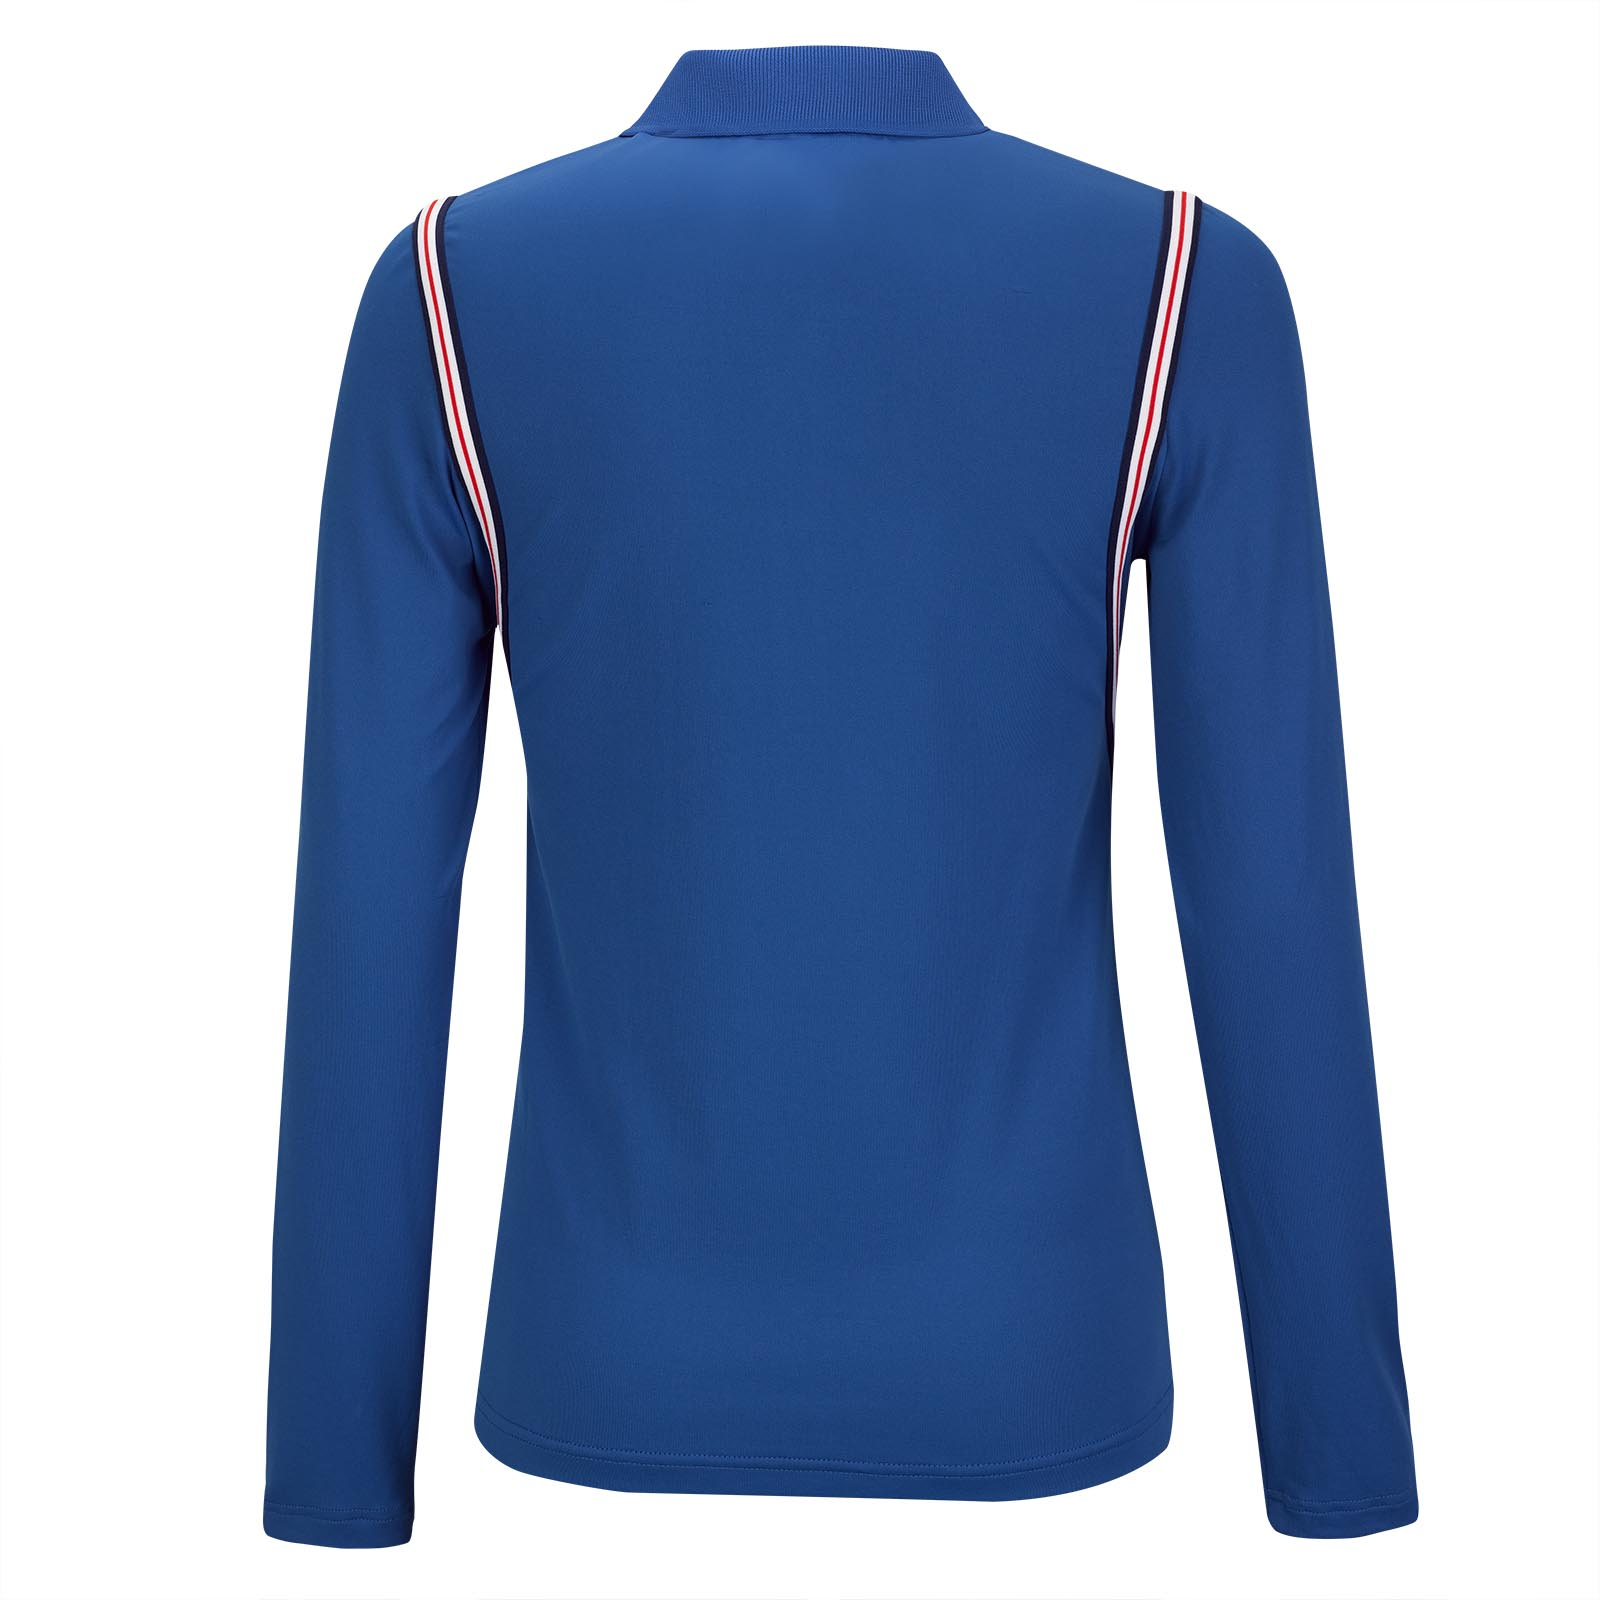 Damen Basic Langarm Funktions-Golfpolo mit Moisture Management